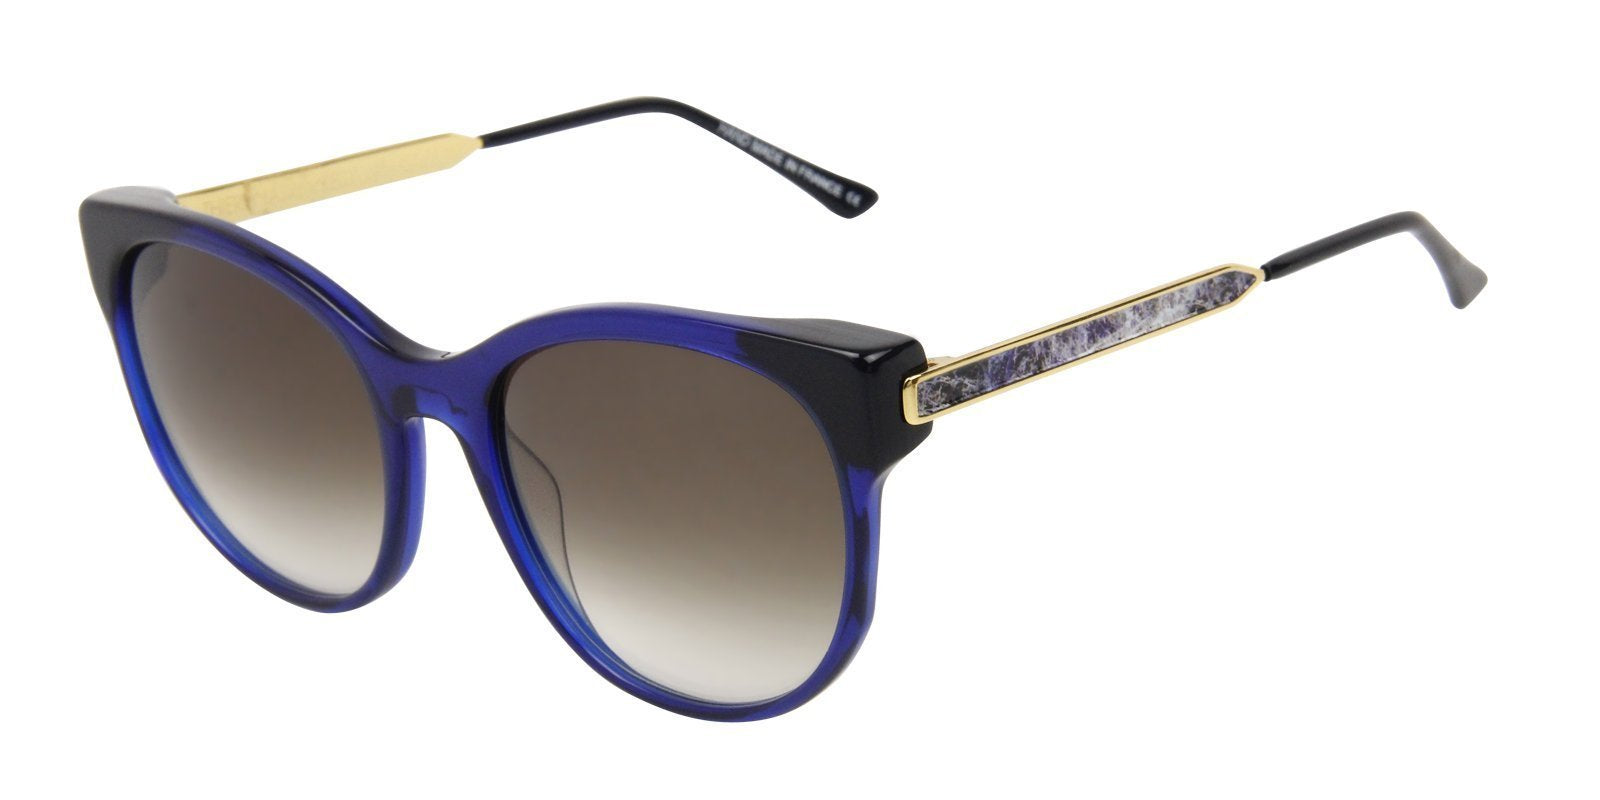 Thierry Lasry - Anorexxxy Blue Oval Women Sunglasses - 56mm-Sunglasses-Designer Eyes